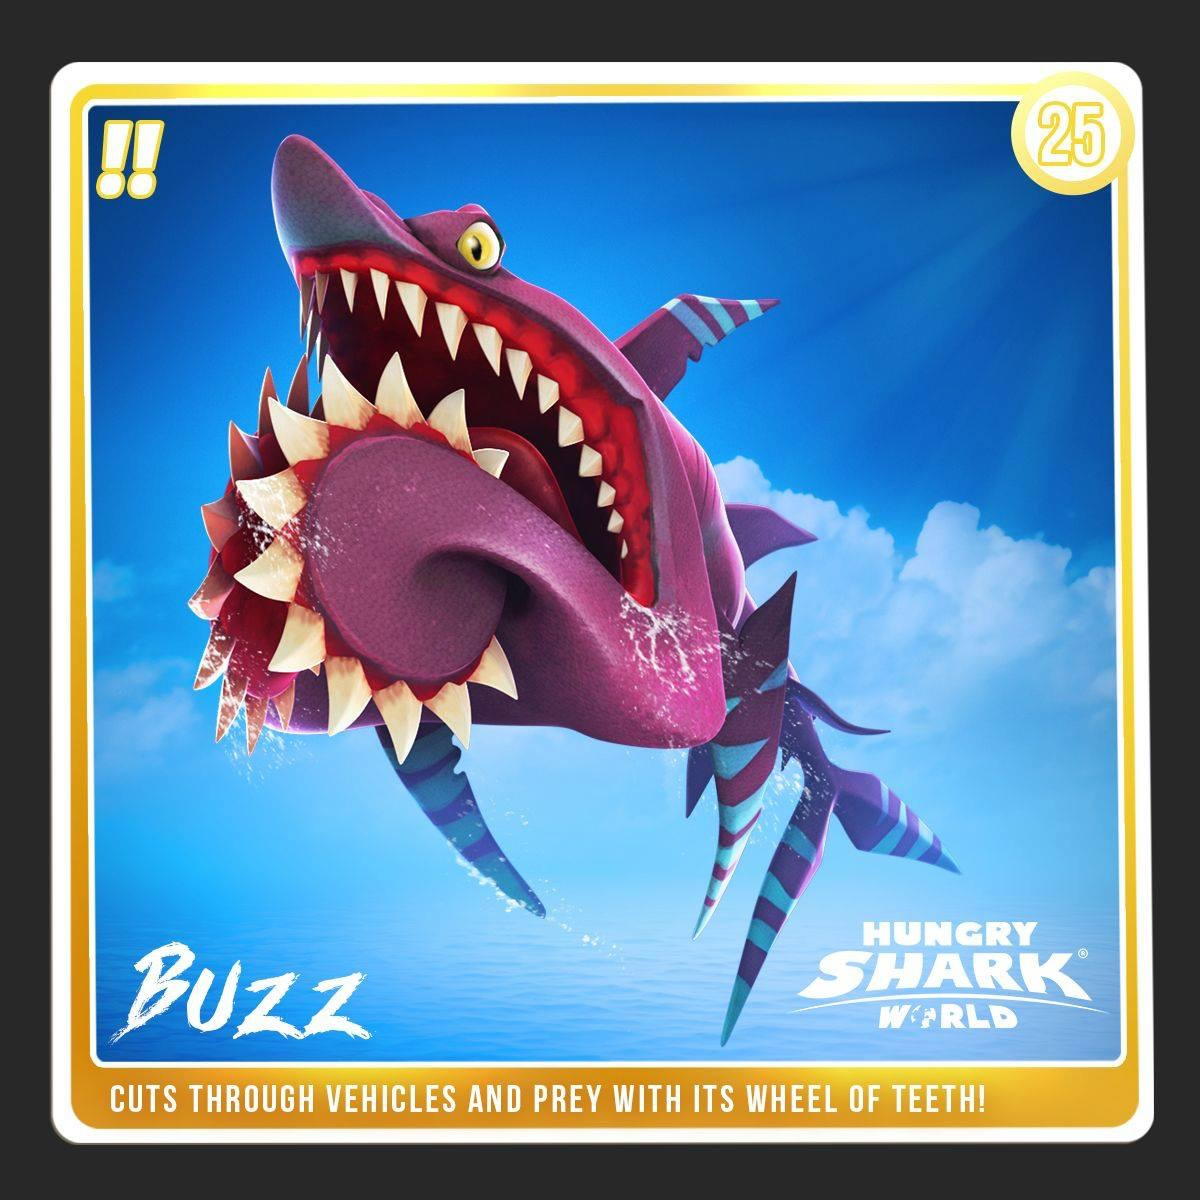 World Of Buzz: Buzz (Helicoprion)